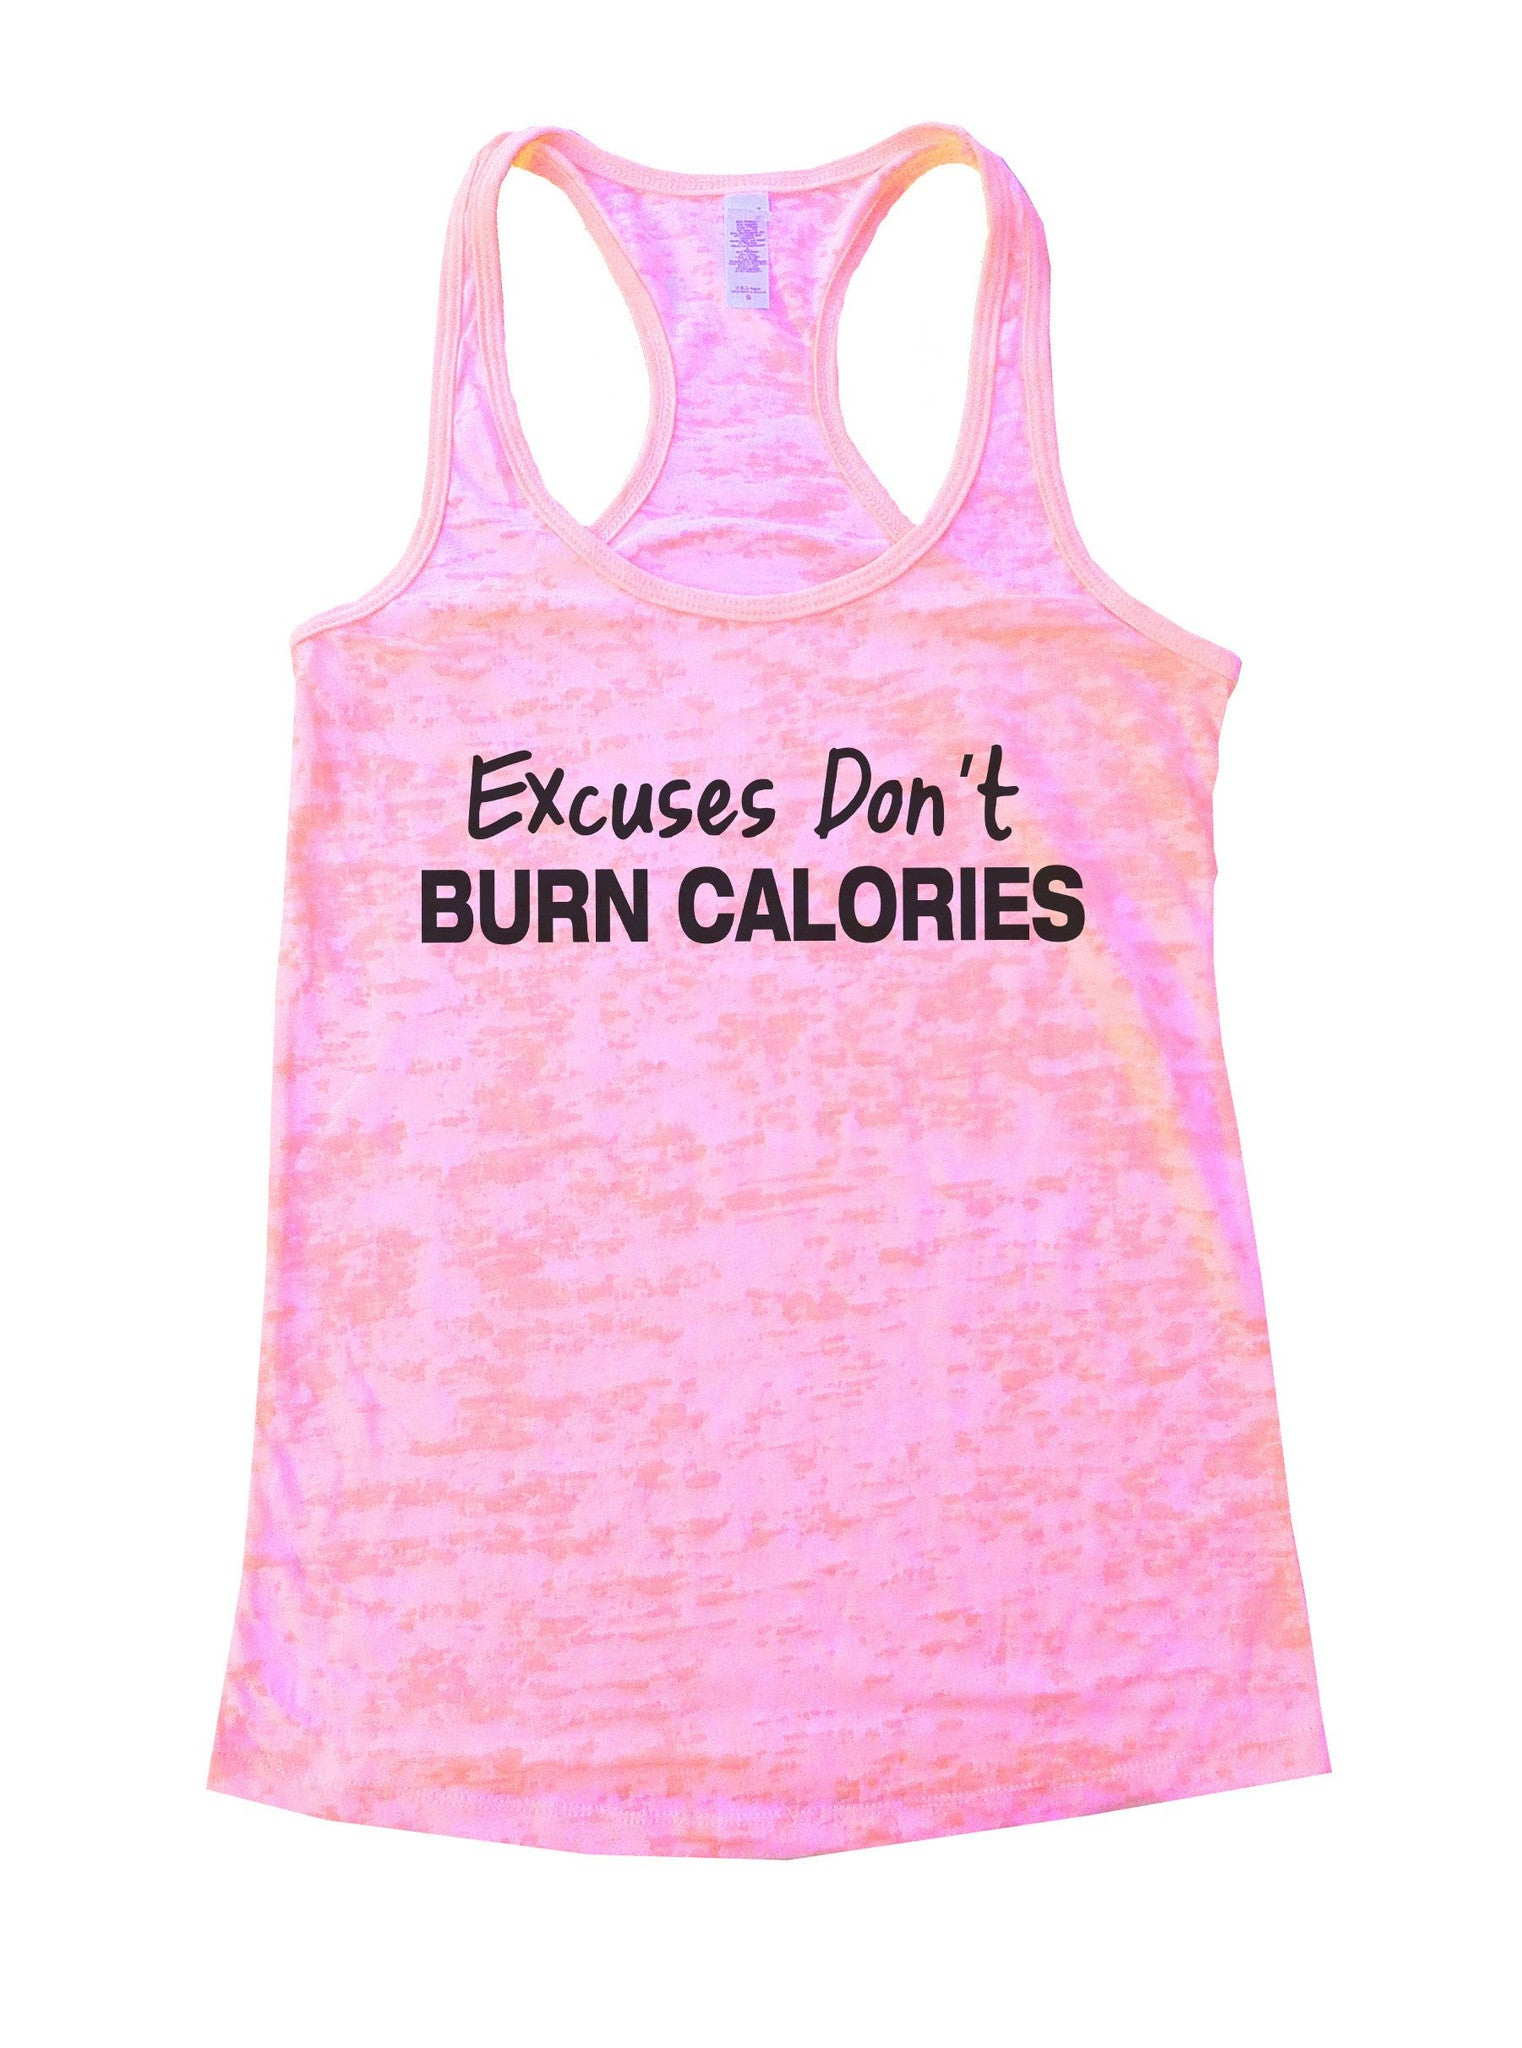 Excuses Don't Burn Calories Burnout Tank Top By BurnoutTankTops.com - 843 - Funny Shirts Tank Tops Burnouts and Triblends  - 1